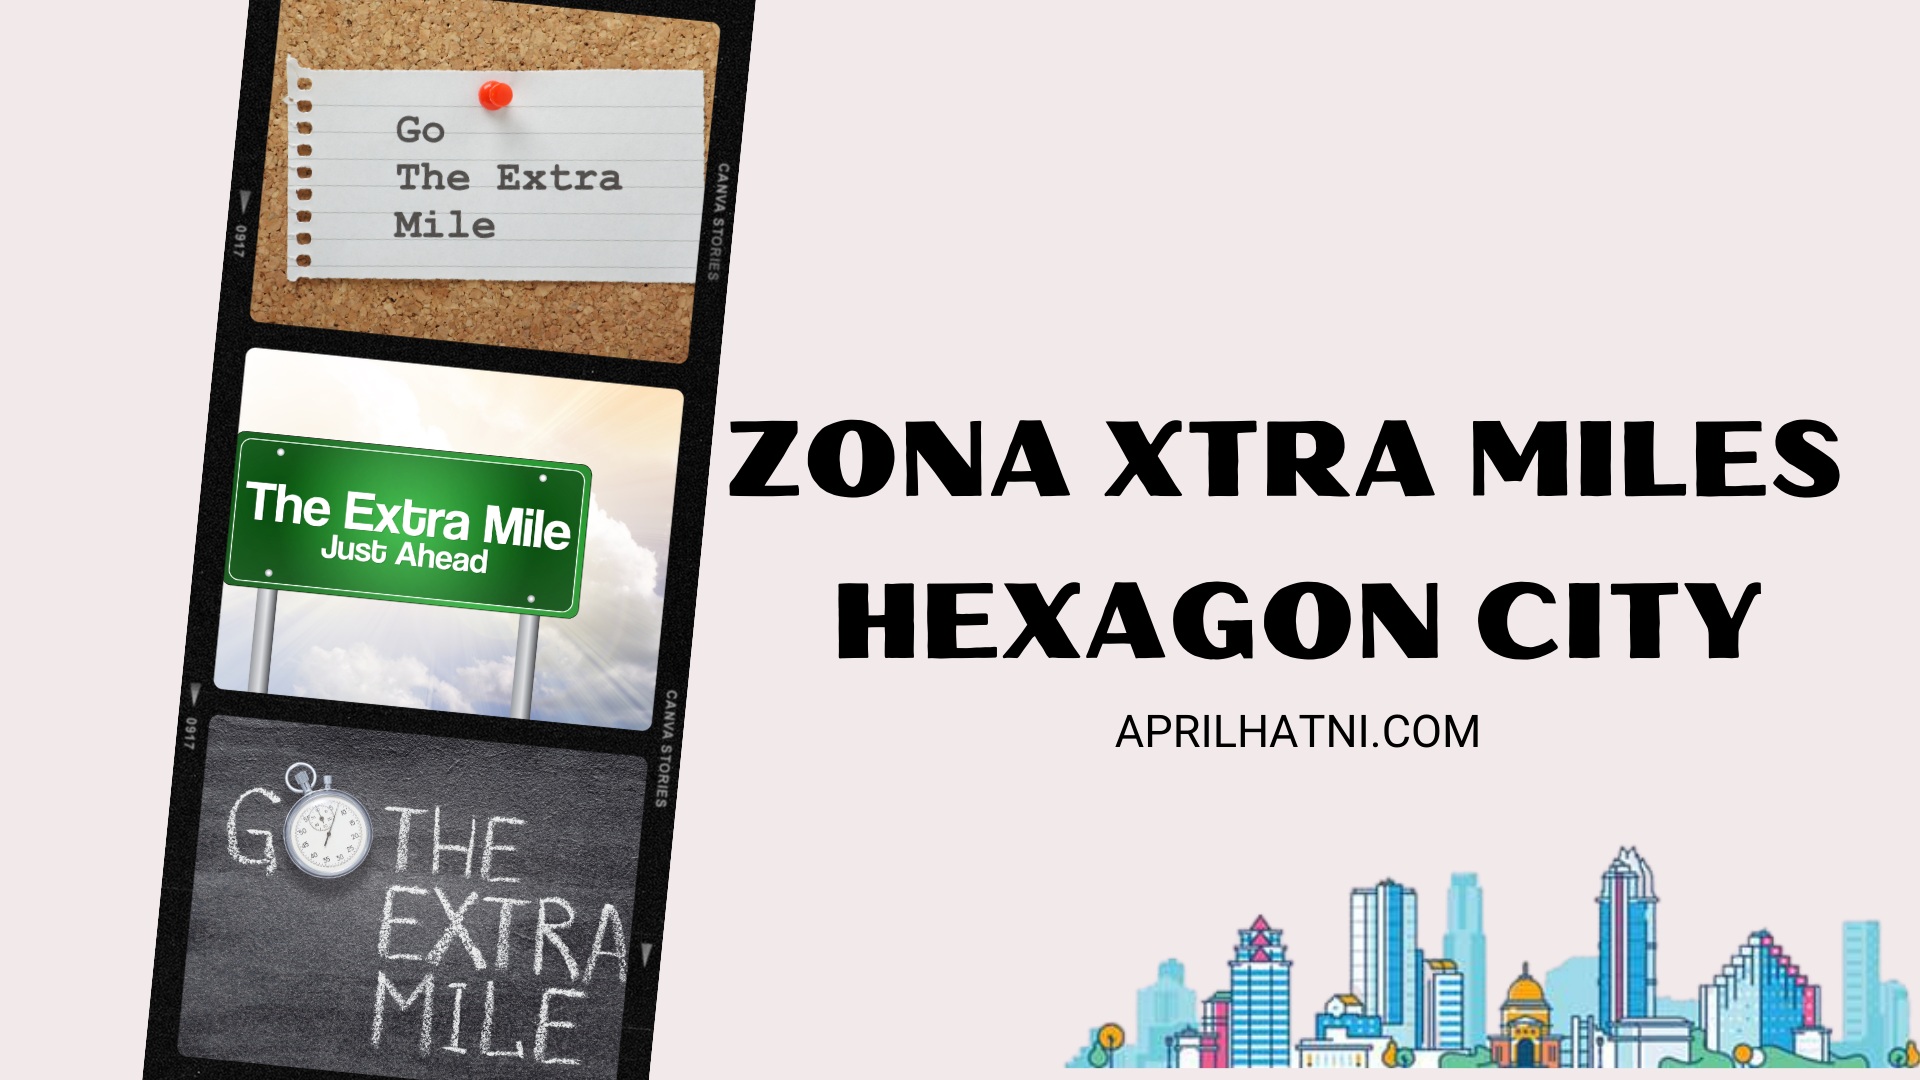 zona xtra miles hexagon city